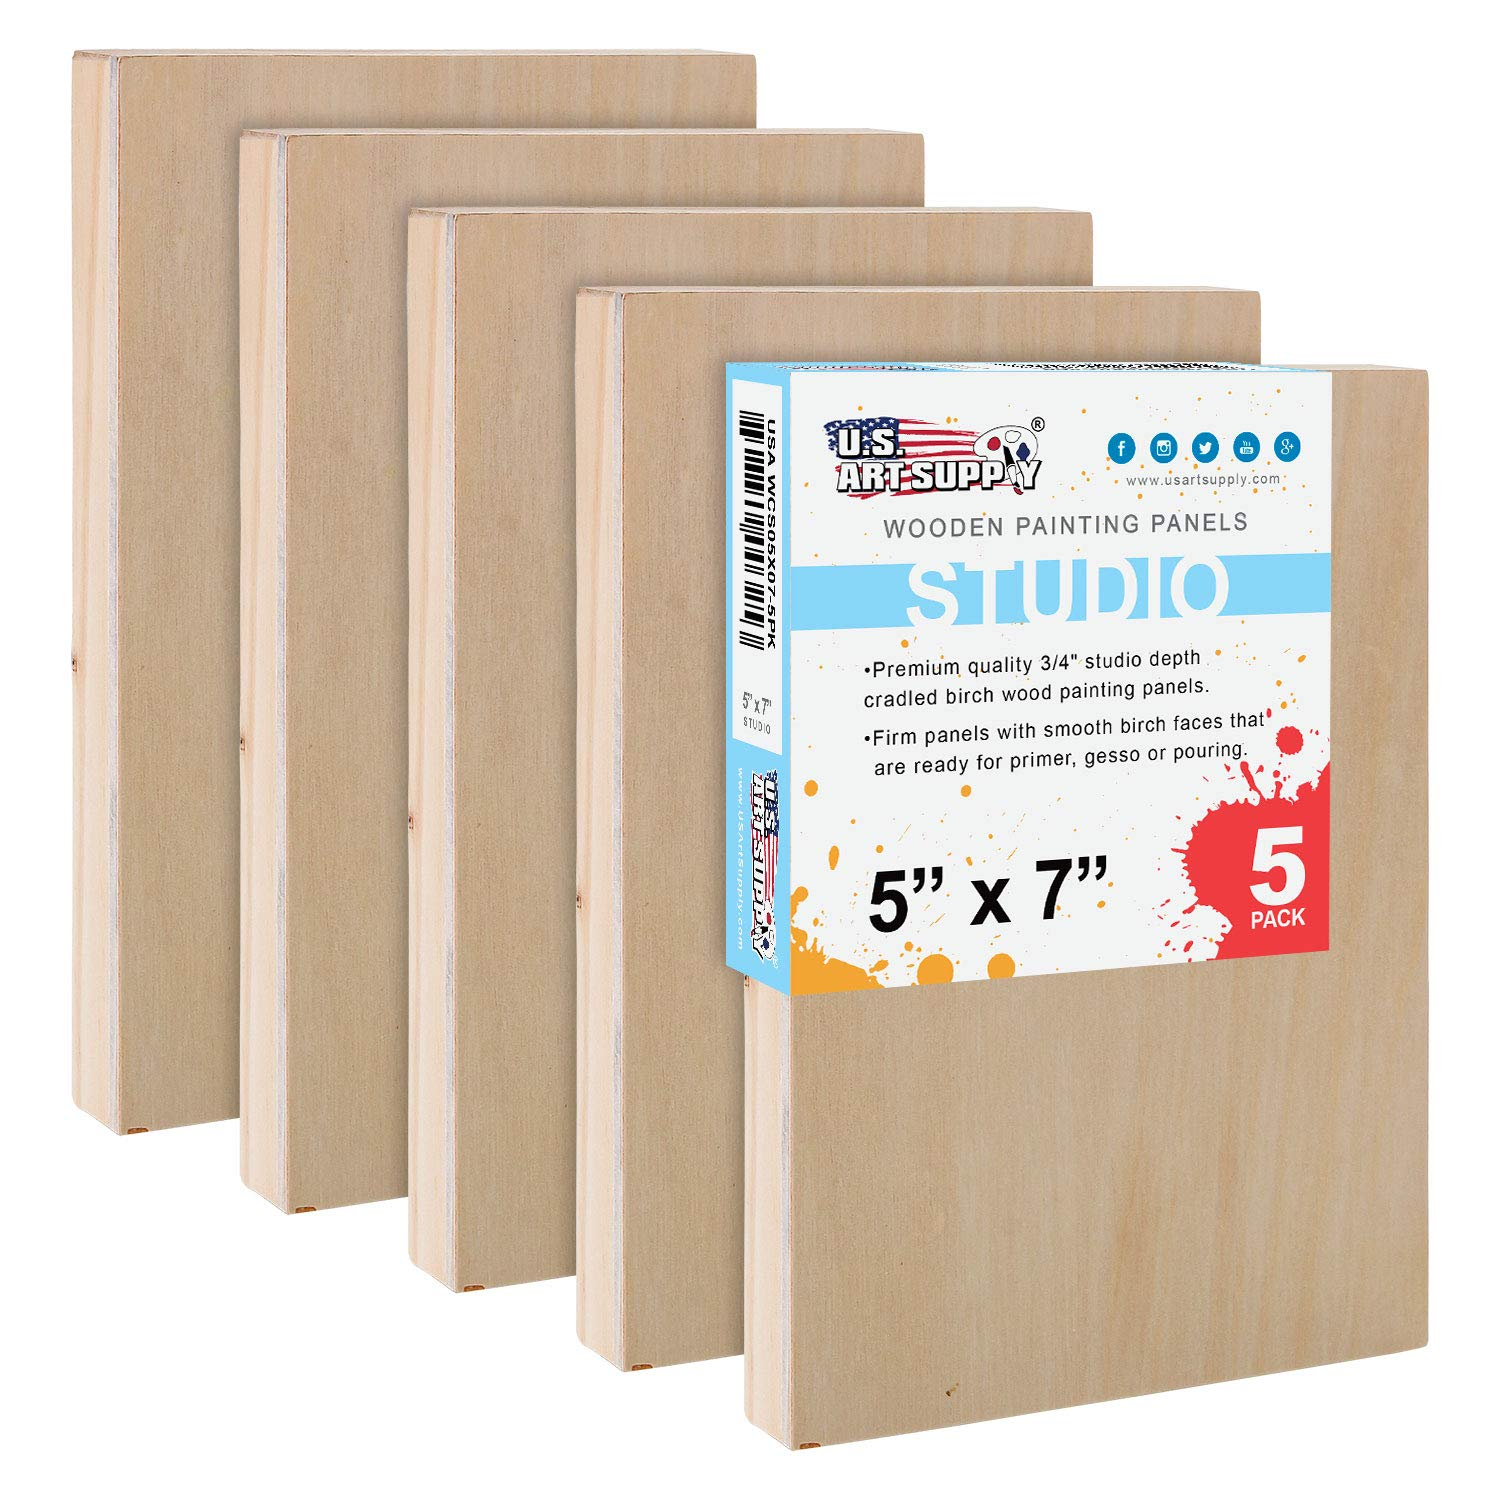 U.S. Art Supply 5'' x 7'' Birch Wood Paint Pouring Panel Boards, Studio 3/4'' Deep Cradle (Pack of 5) - Artist Wooden Wall Canvases - Painting Mixed-Media Craft, Acrylic, Oil, Watercolor, Encaustic by US Art Supply